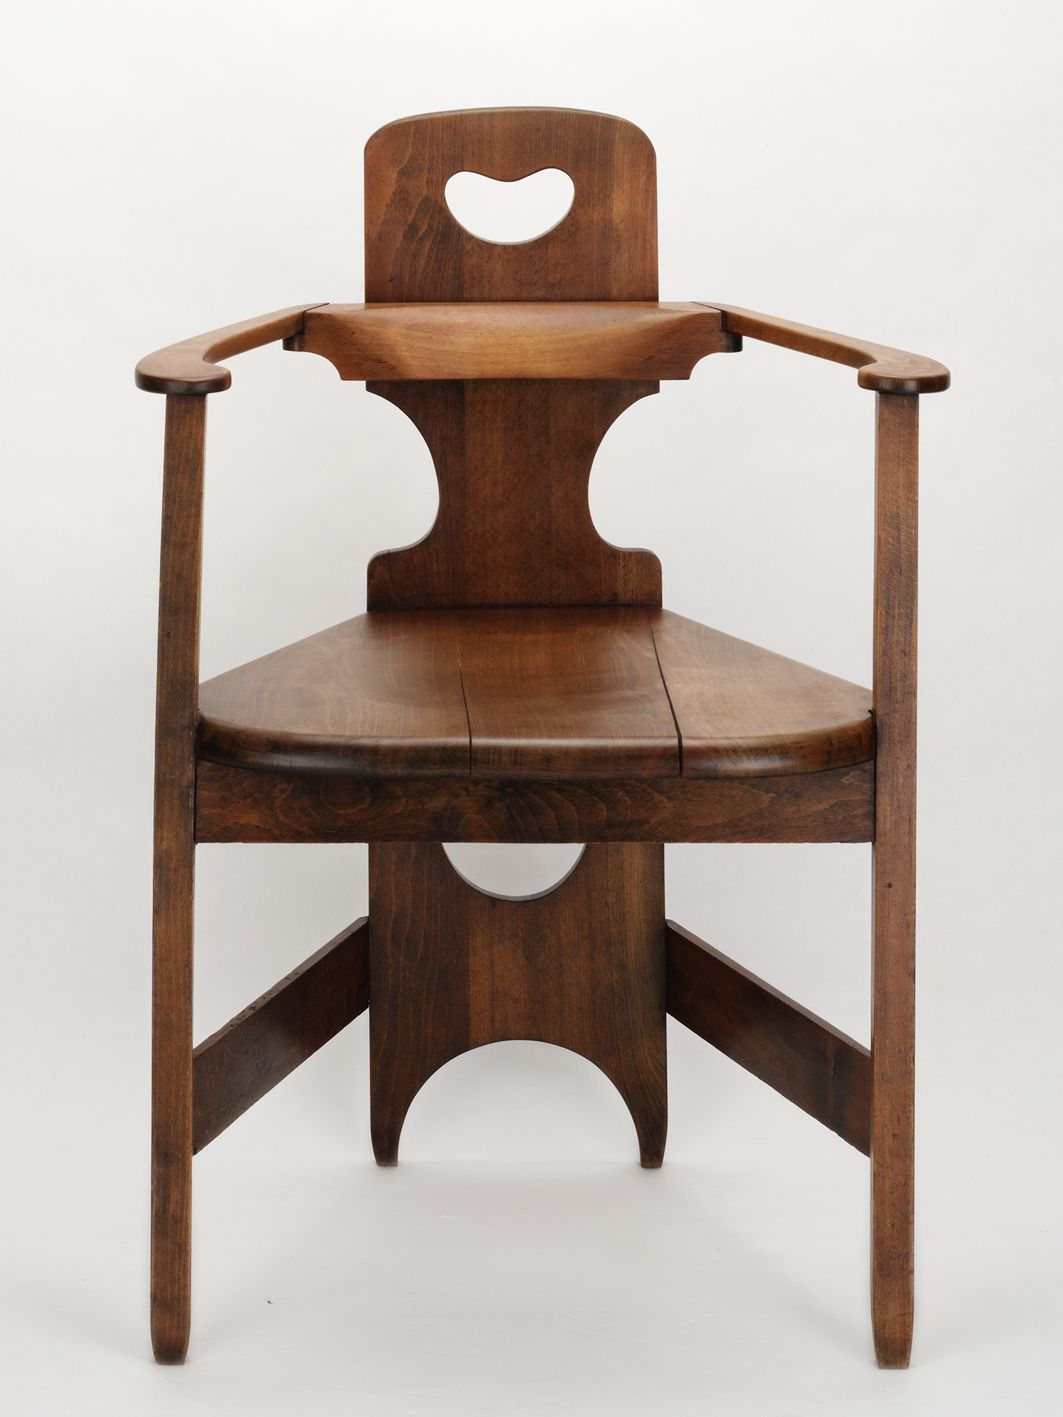 Jugendstil Sessel Richard Riemerschmid Sessel 1900 Sit Sessel Stühle Möbel